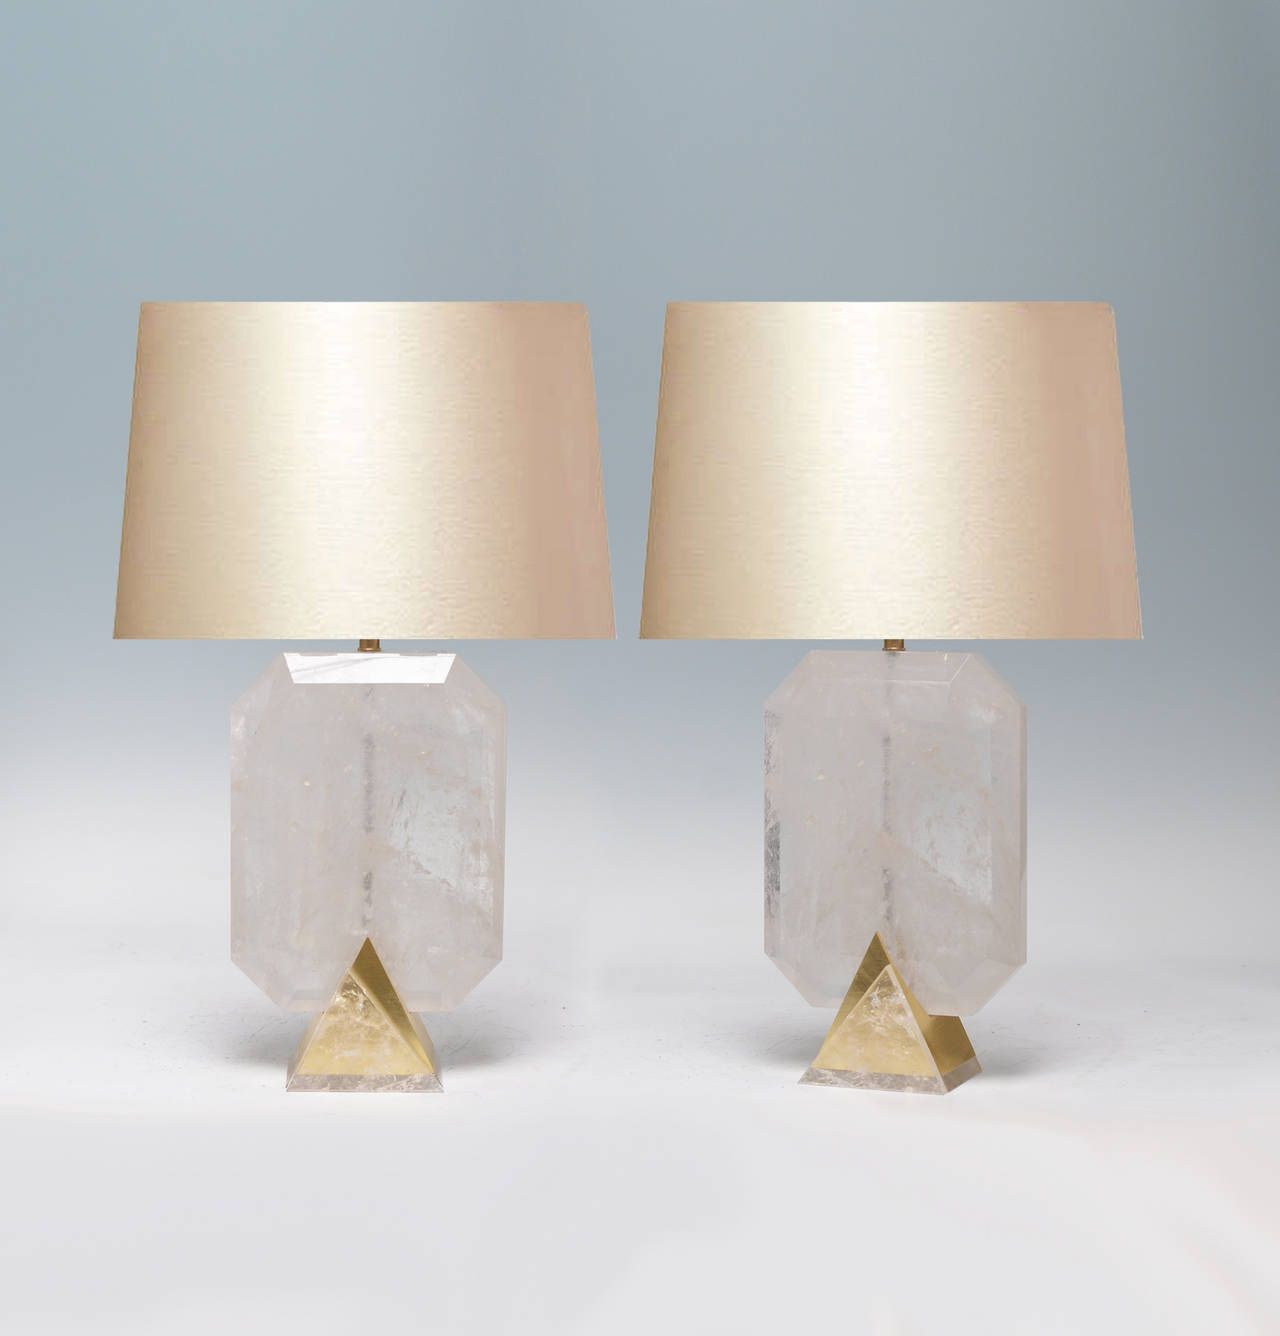 Pair of Fine Carved Rock Crystal, Quartz Lamps | From a unique collection of antique and modern table lamps at https://www.1stdibs.com/furniture/lighting/table-lamps/